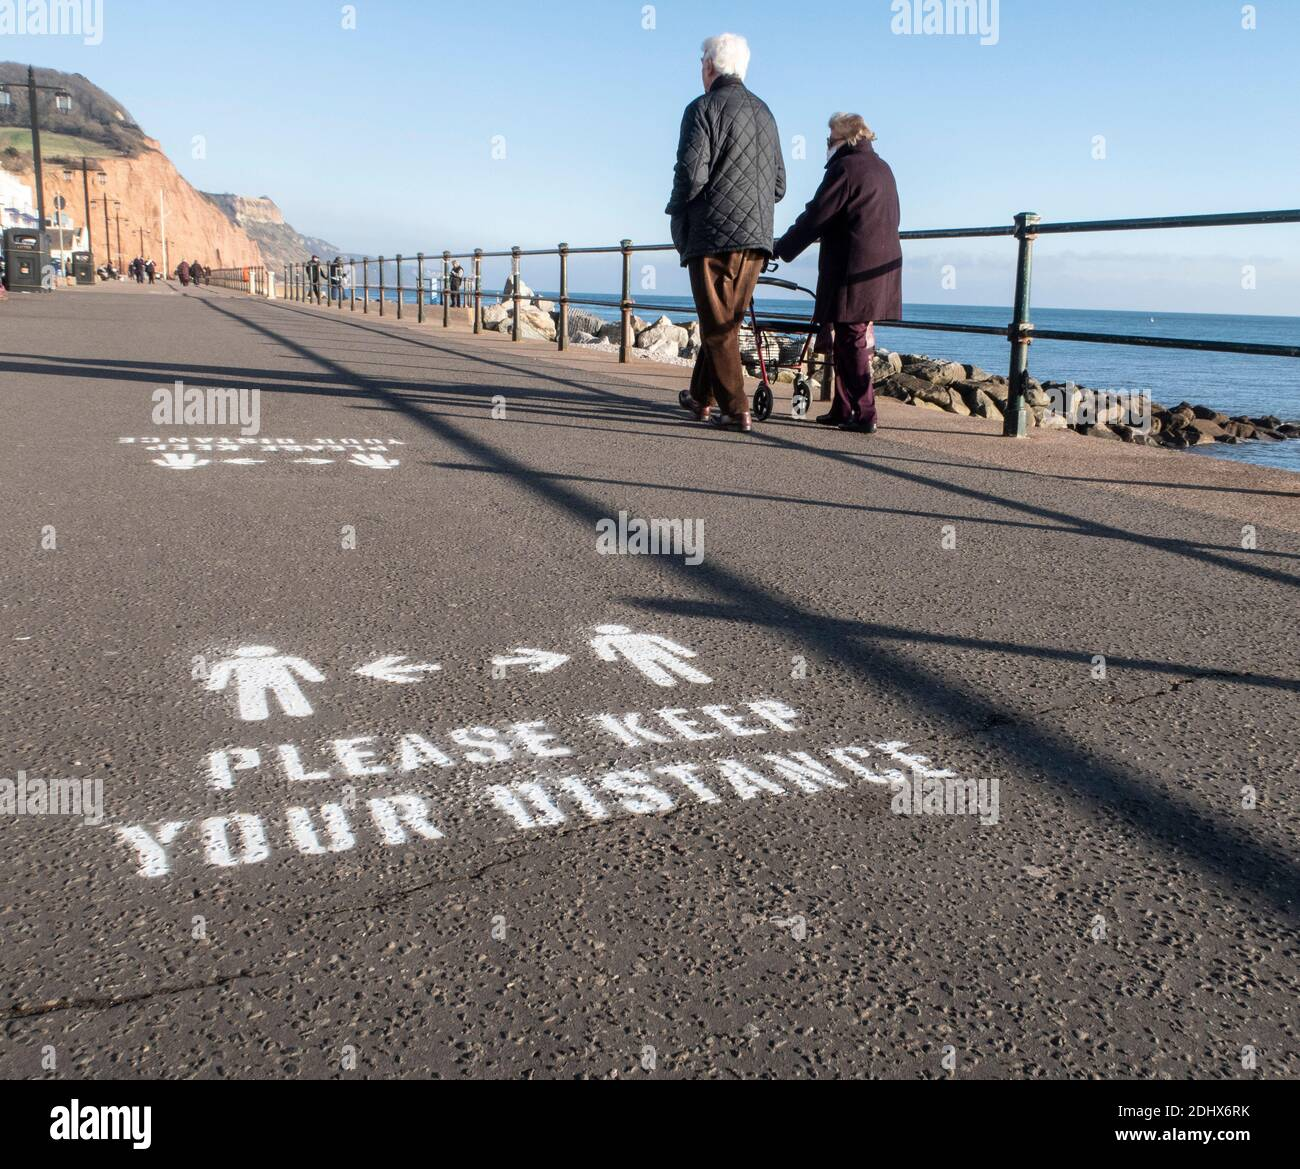 Keep your distance signs, social distancing, painted onto the Esplanade at Sidmouth, Devon, England, UK Stock Photo